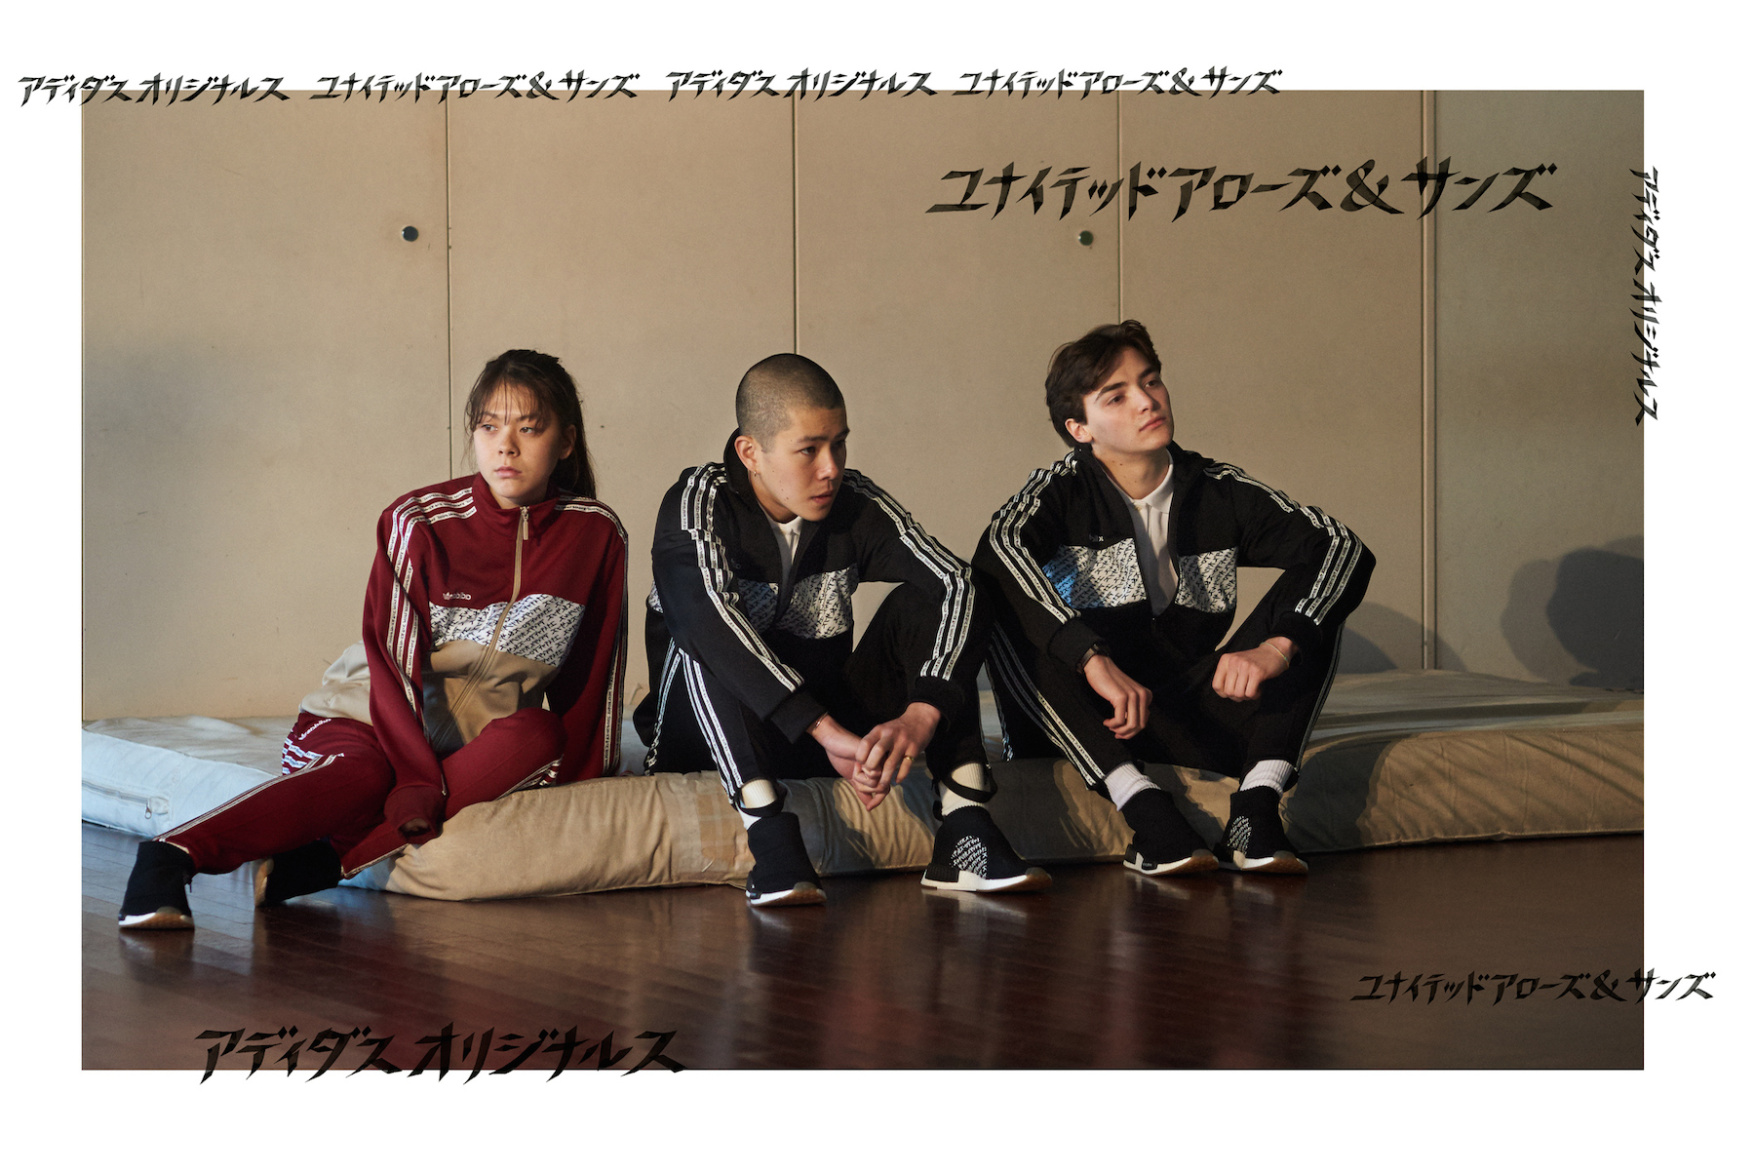 adidas-originals-x-united-arrows-sons-x-mikitype-collection-01